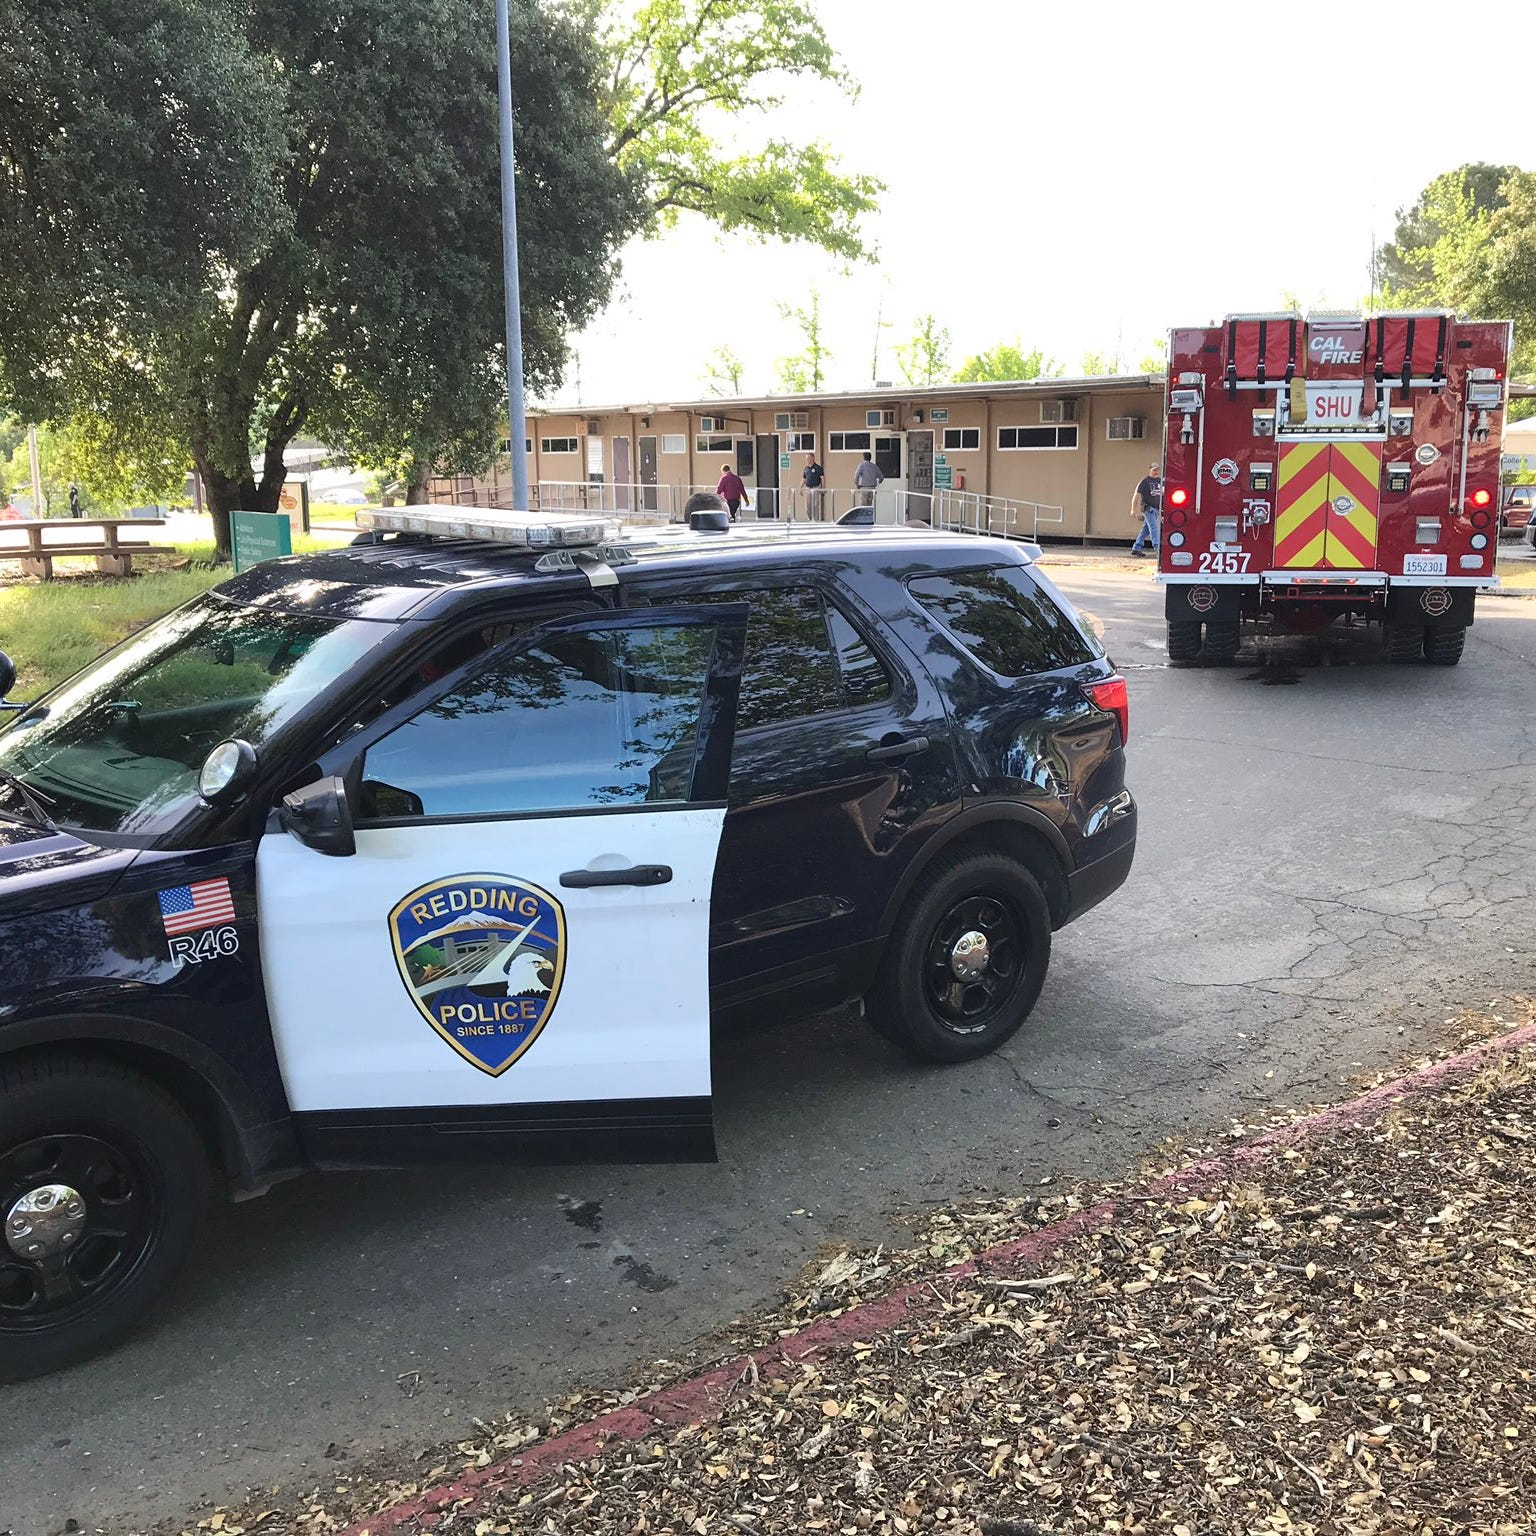 Witness: At least one officer injured at Shasta College